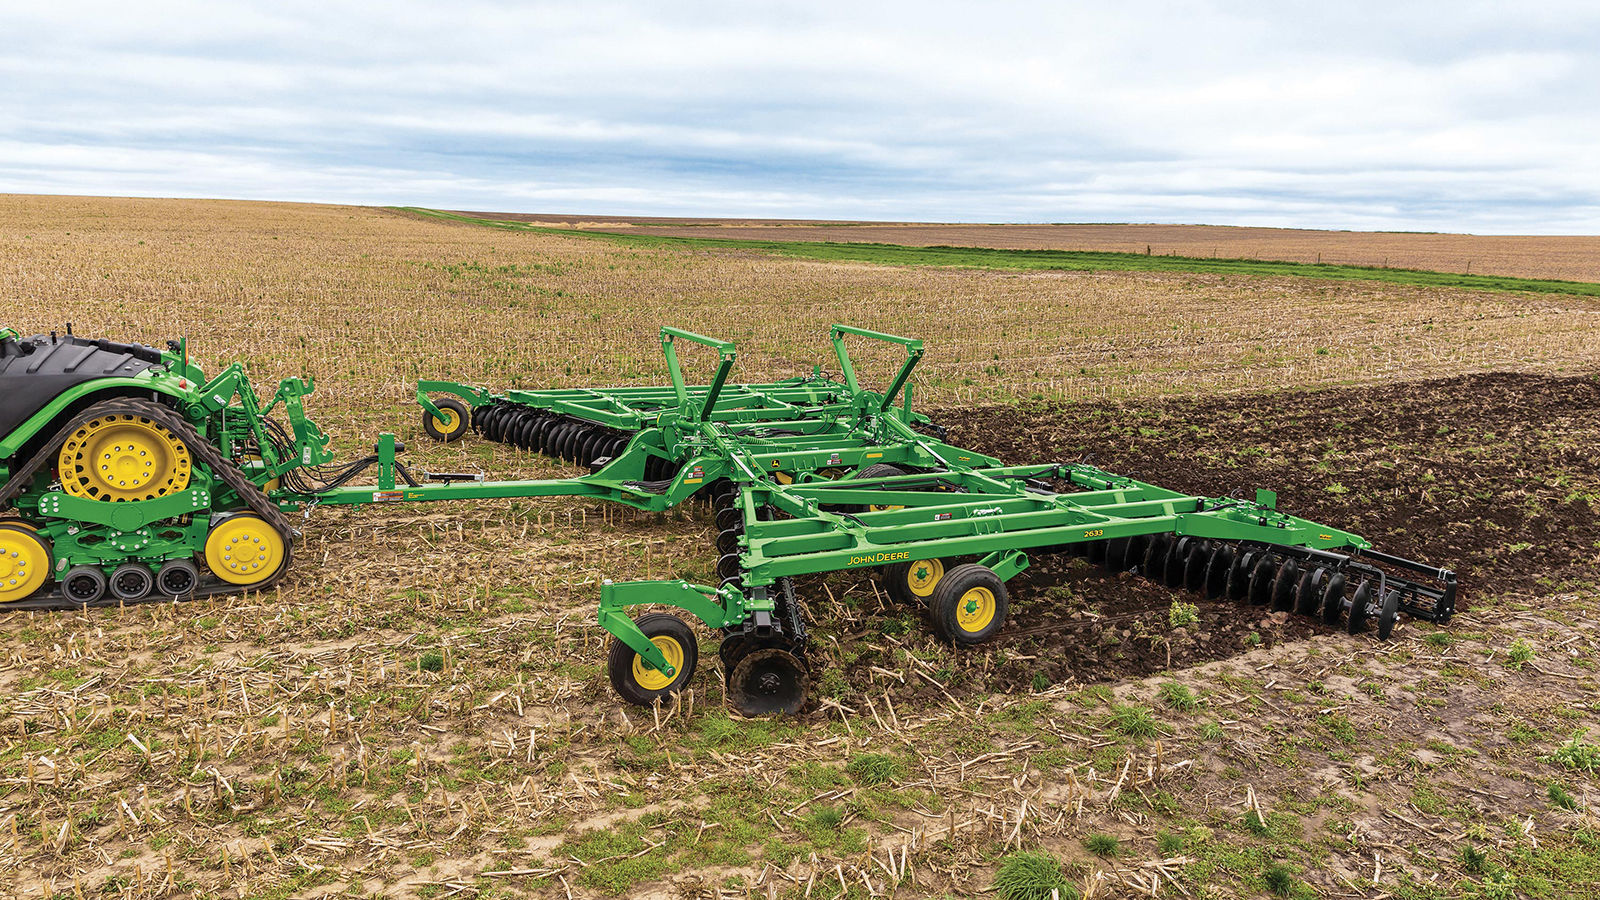 Tandem John Deere Tractors : Key highlights of the john deere series disks